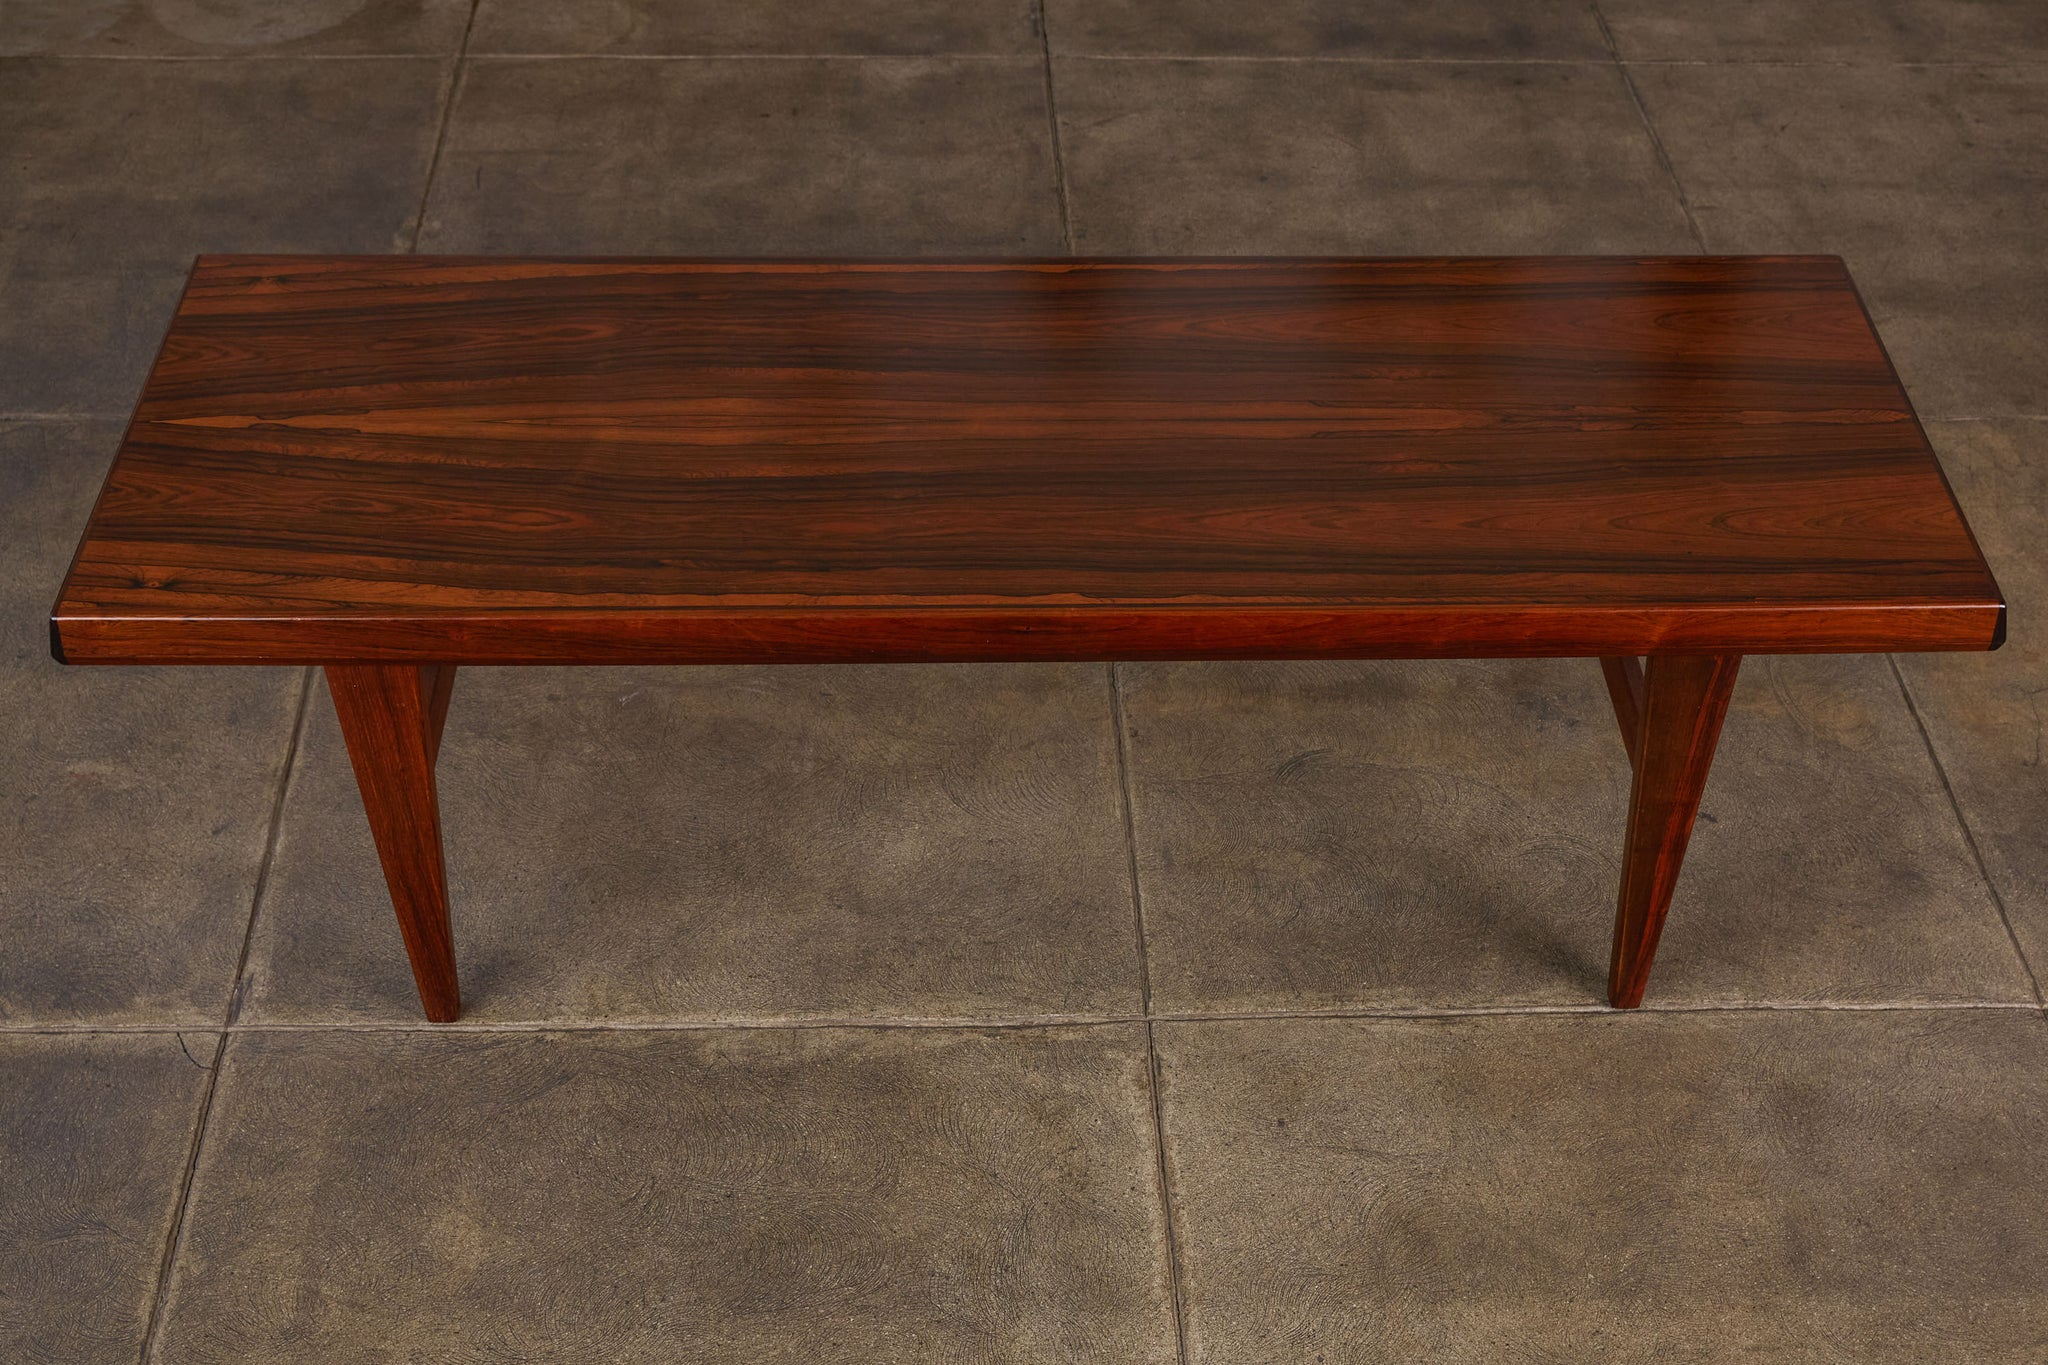 Niels Bach Rosewood Coffee Table